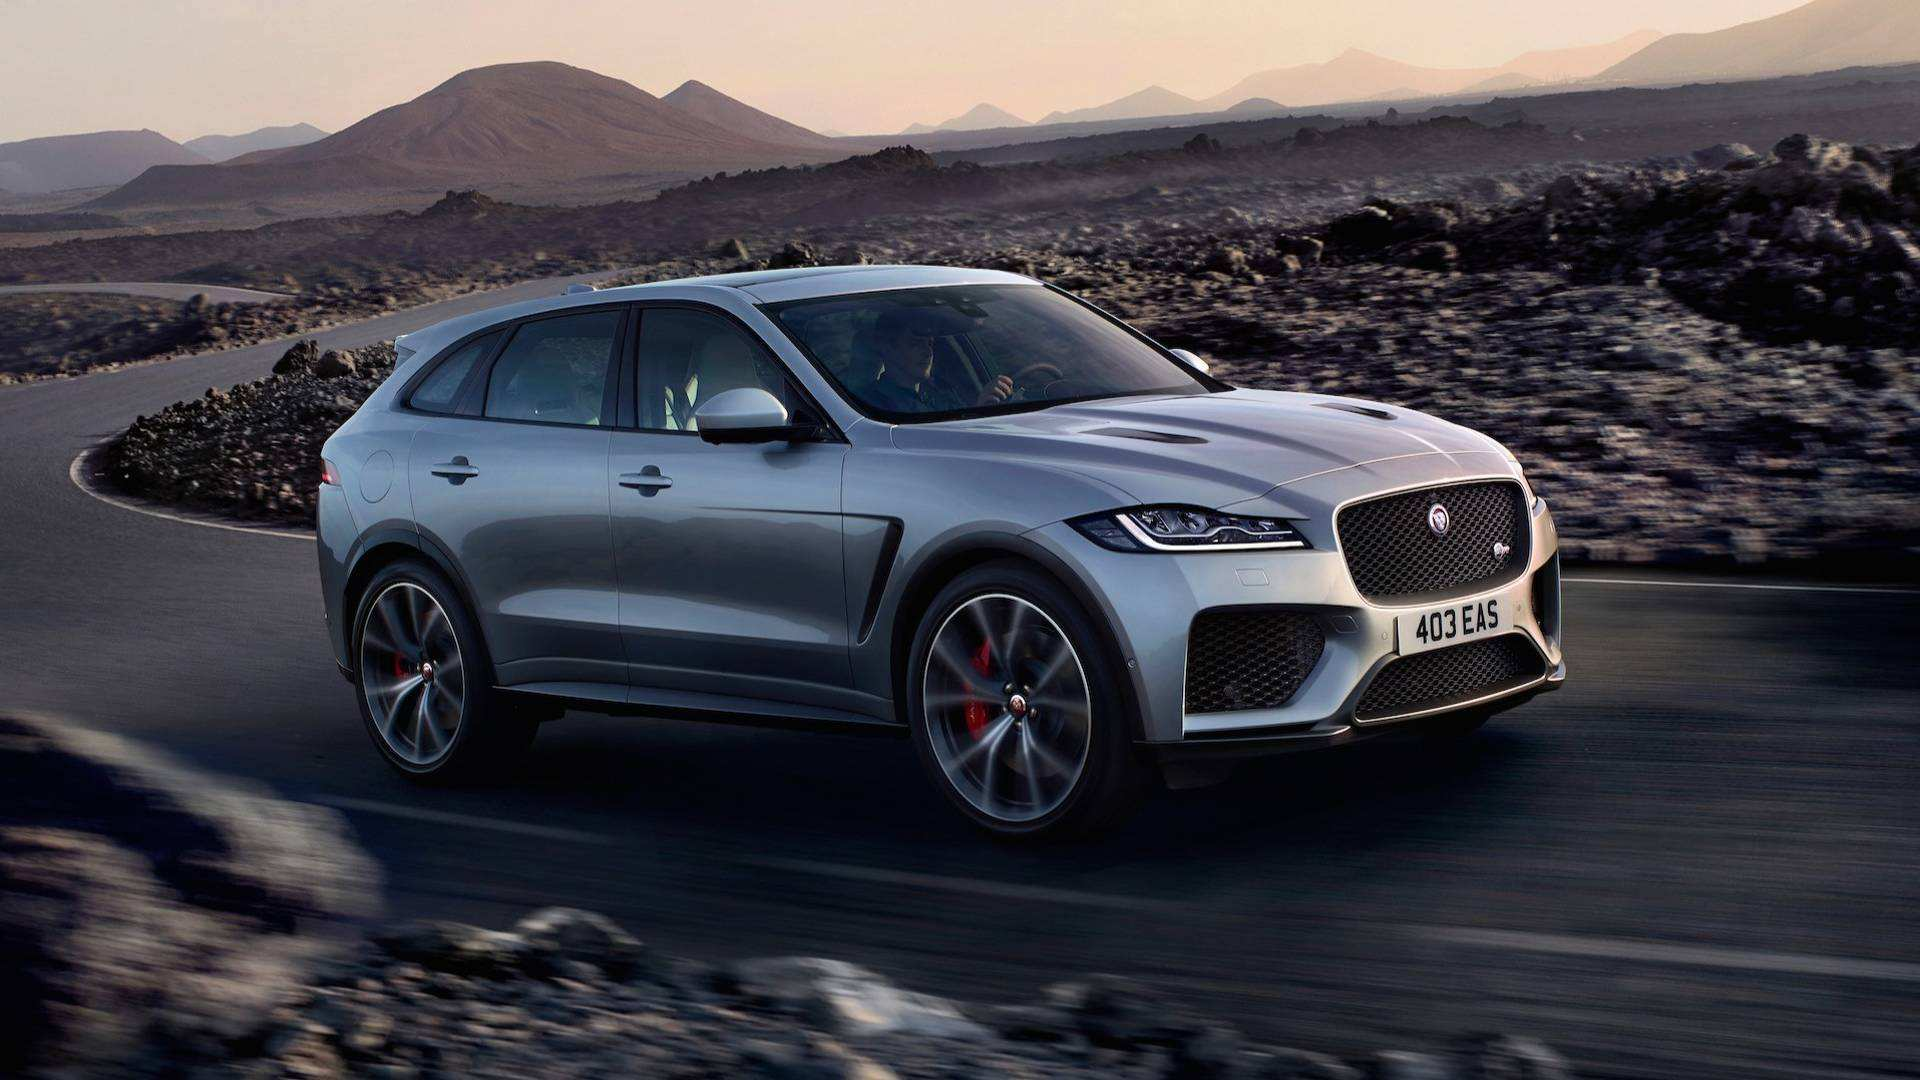 13 All New Jaguar F Pace 2020 Model Performance